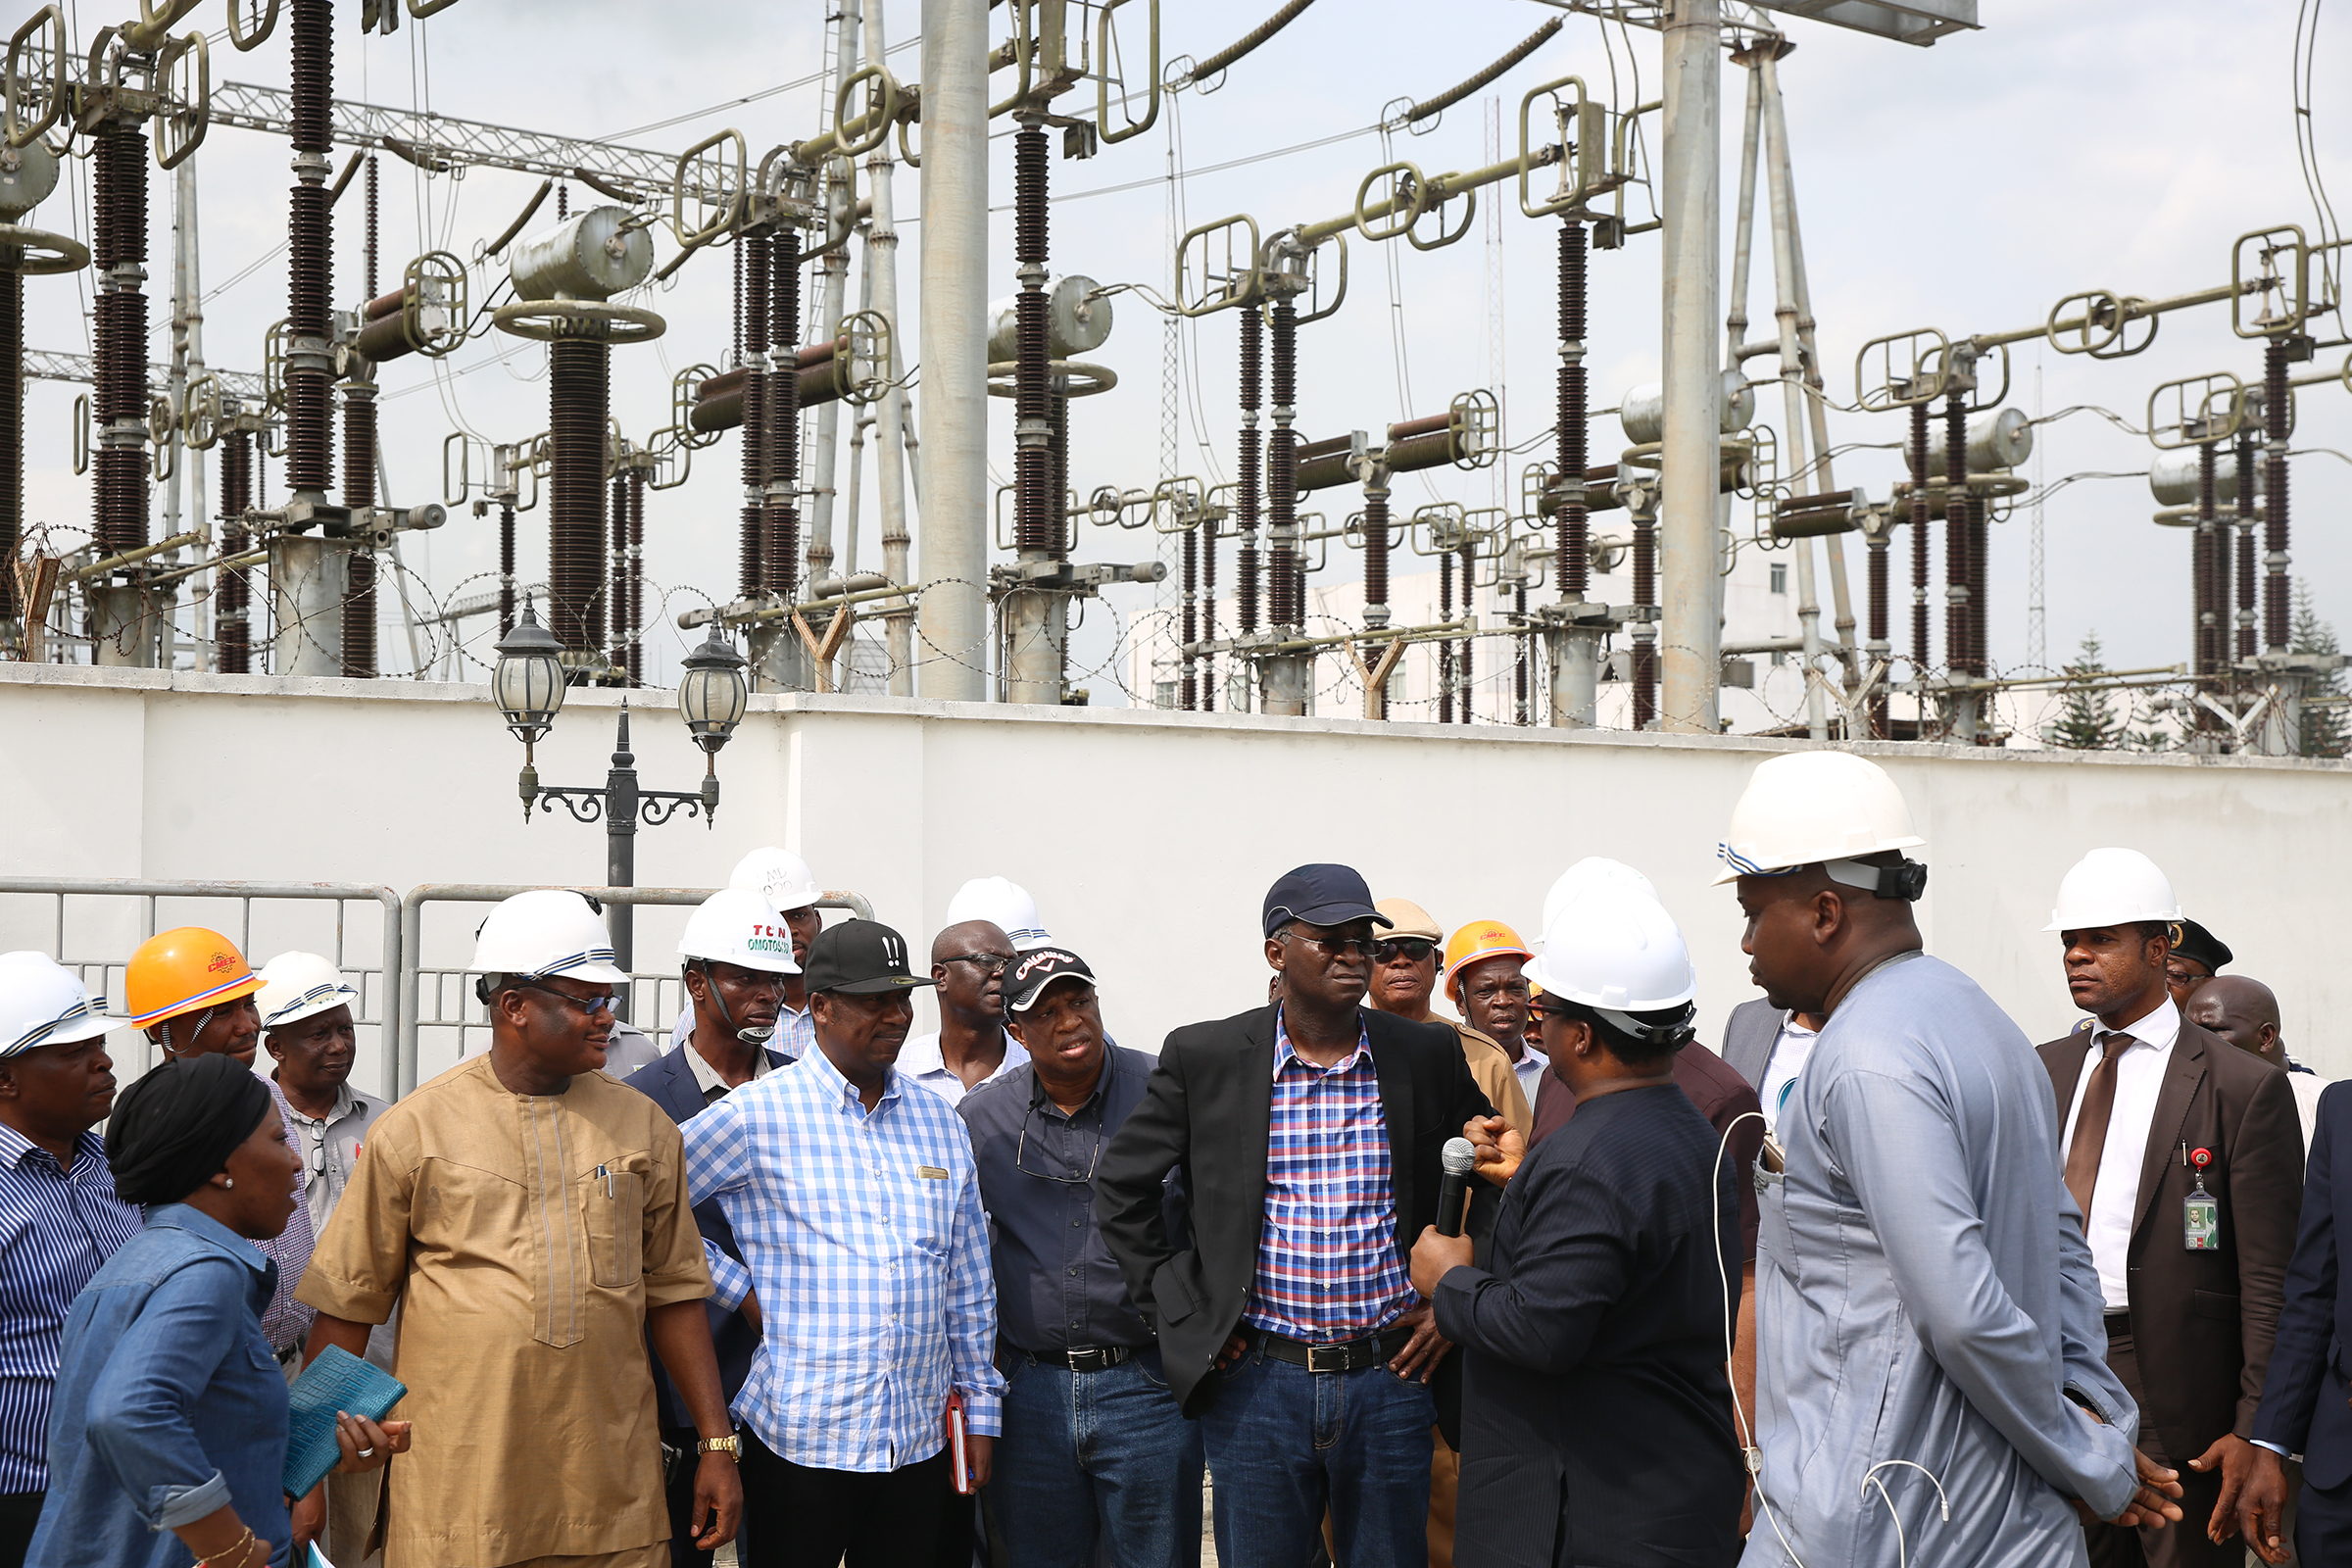 INVESTORS IN OMOTOSHO POWER PLANT COMMEND FG'S EFFORTS TO SOLVE GAS, LIQUIDITY ISSUES IN POWER SECTOR